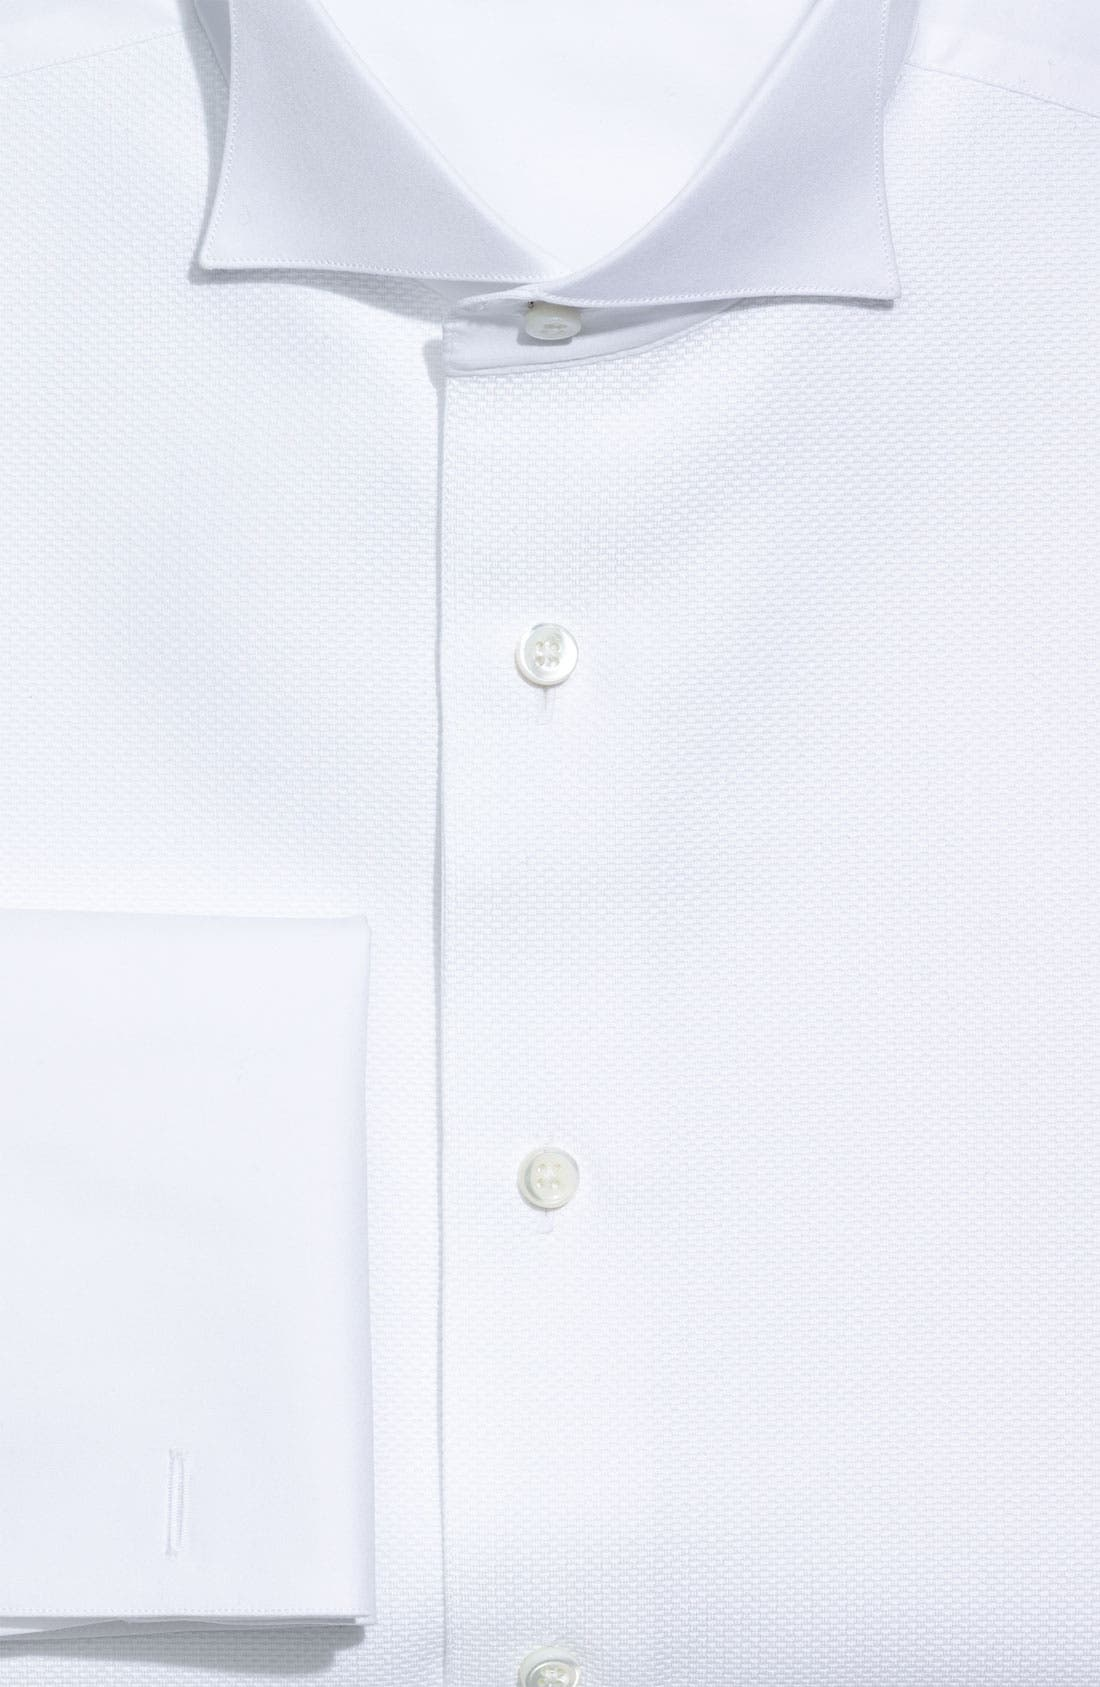 Regular Fit French Cuff Tuxedo Shirt,                             Alternate thumbnail 4, color,                             WHITE